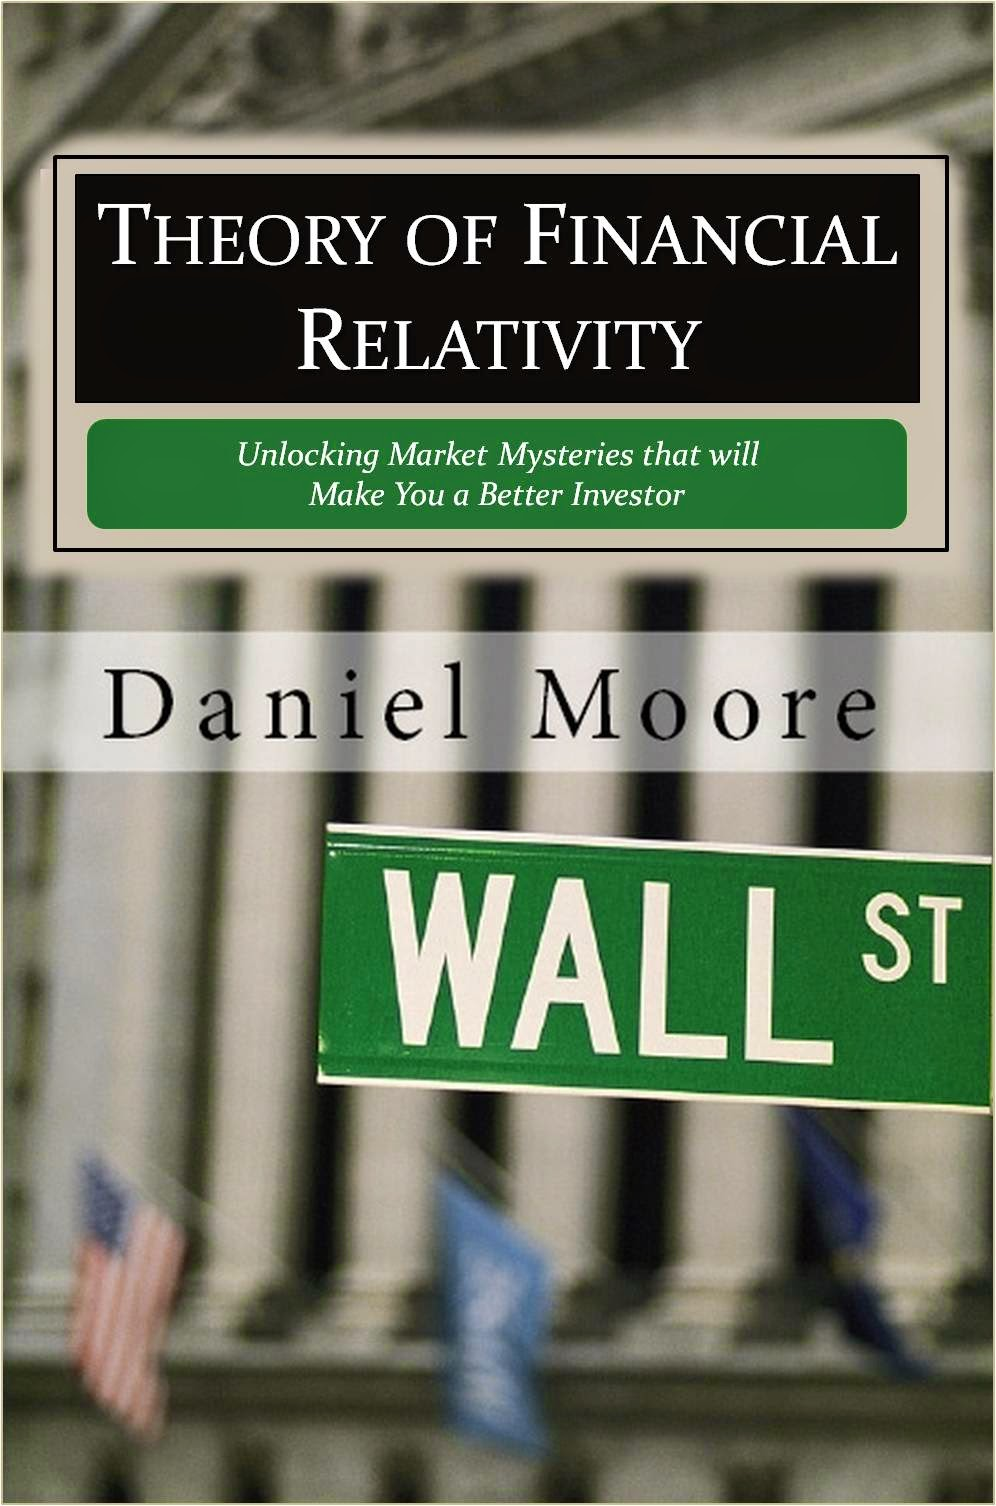 Theory of Financial Relativity Book